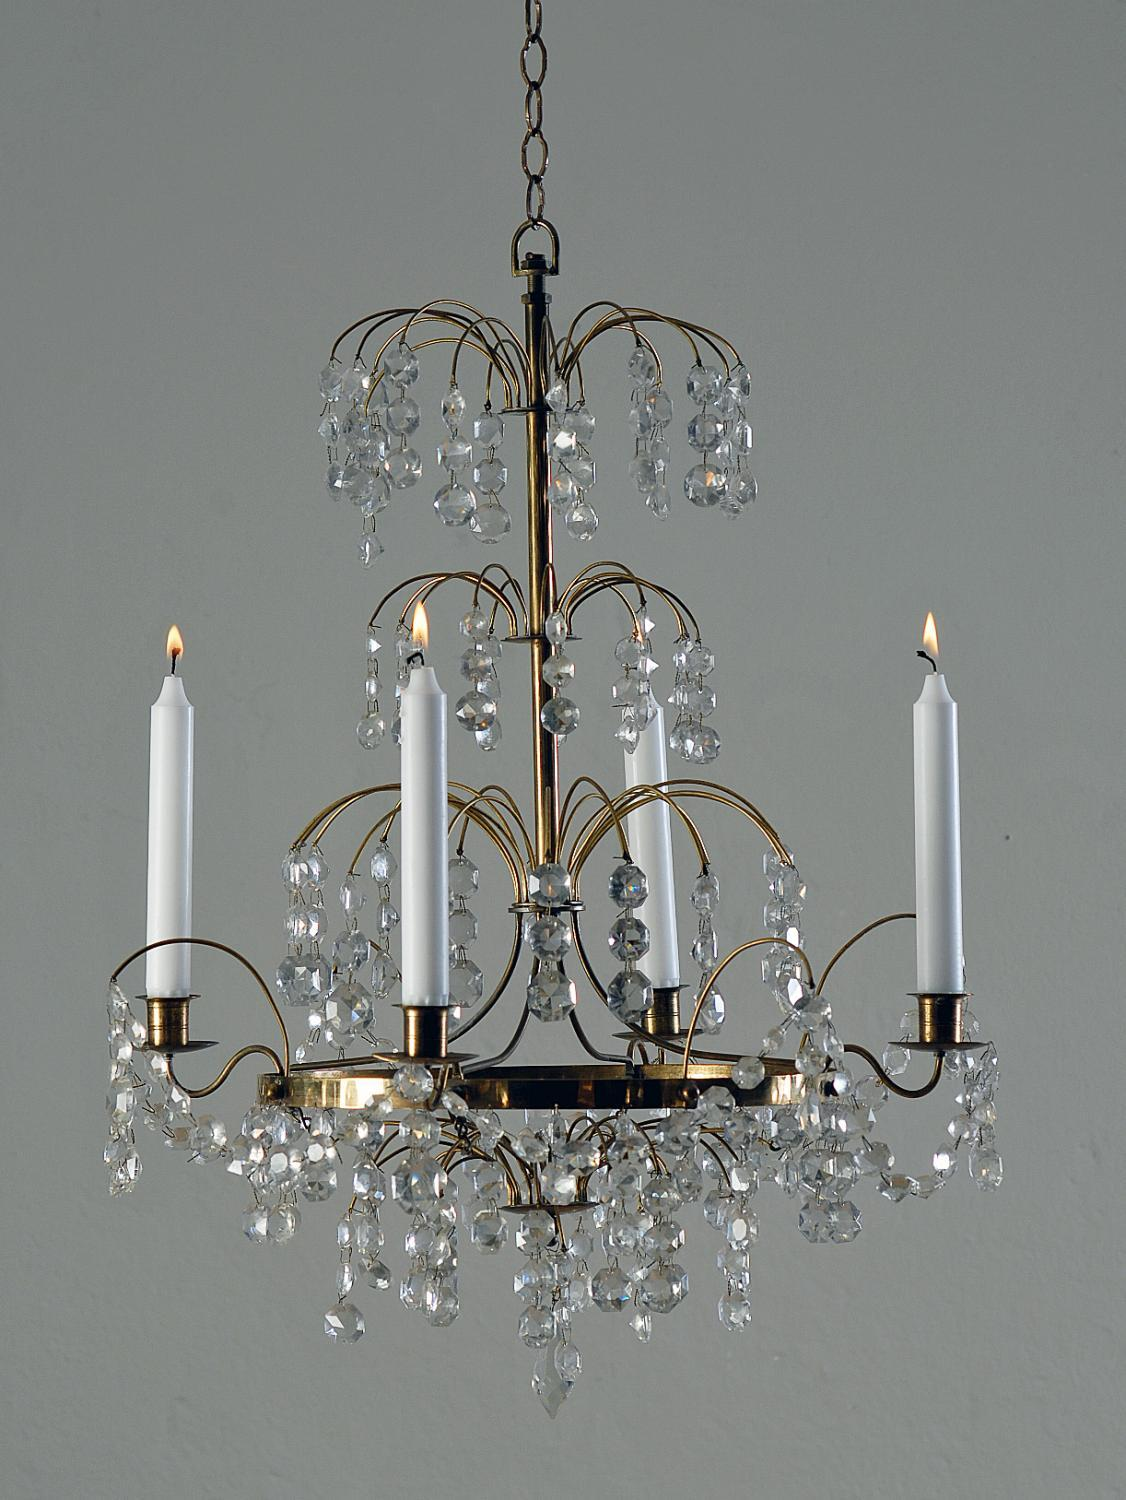 Stylish and Delicate Gustavian Chandelier